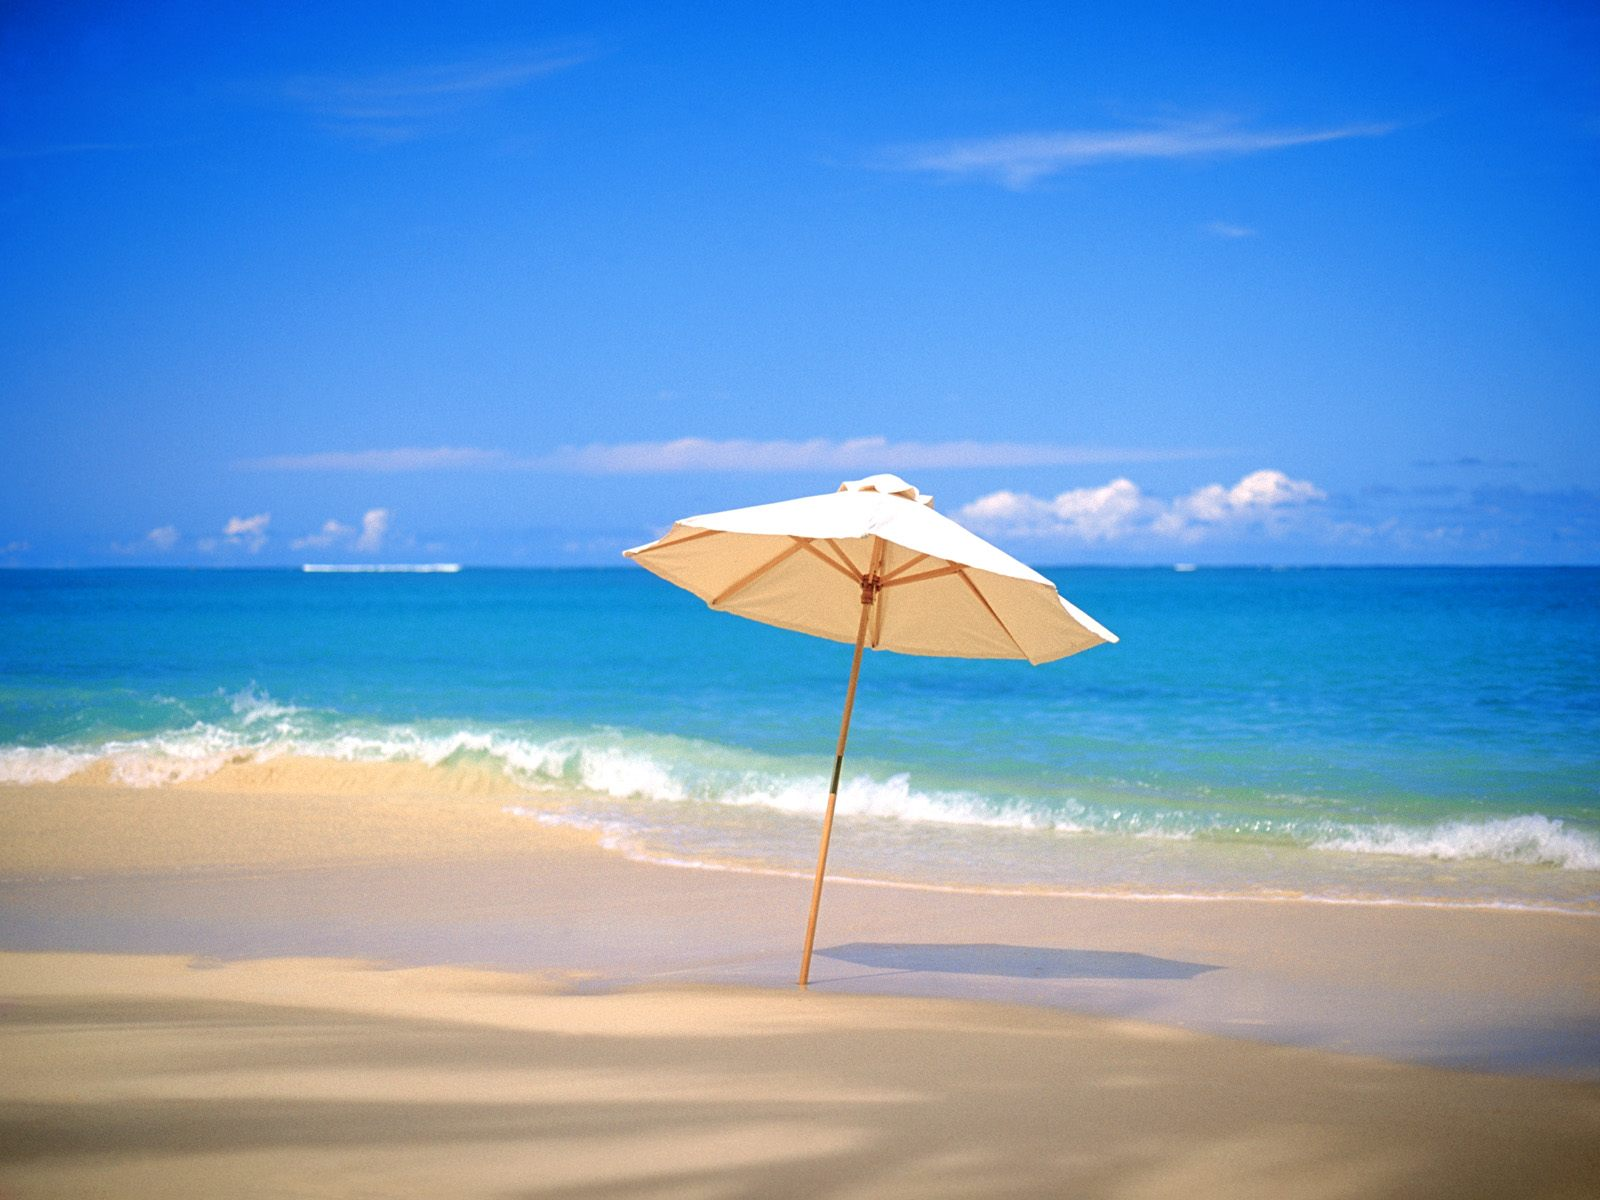 20 tropical backgrounds - photo #44